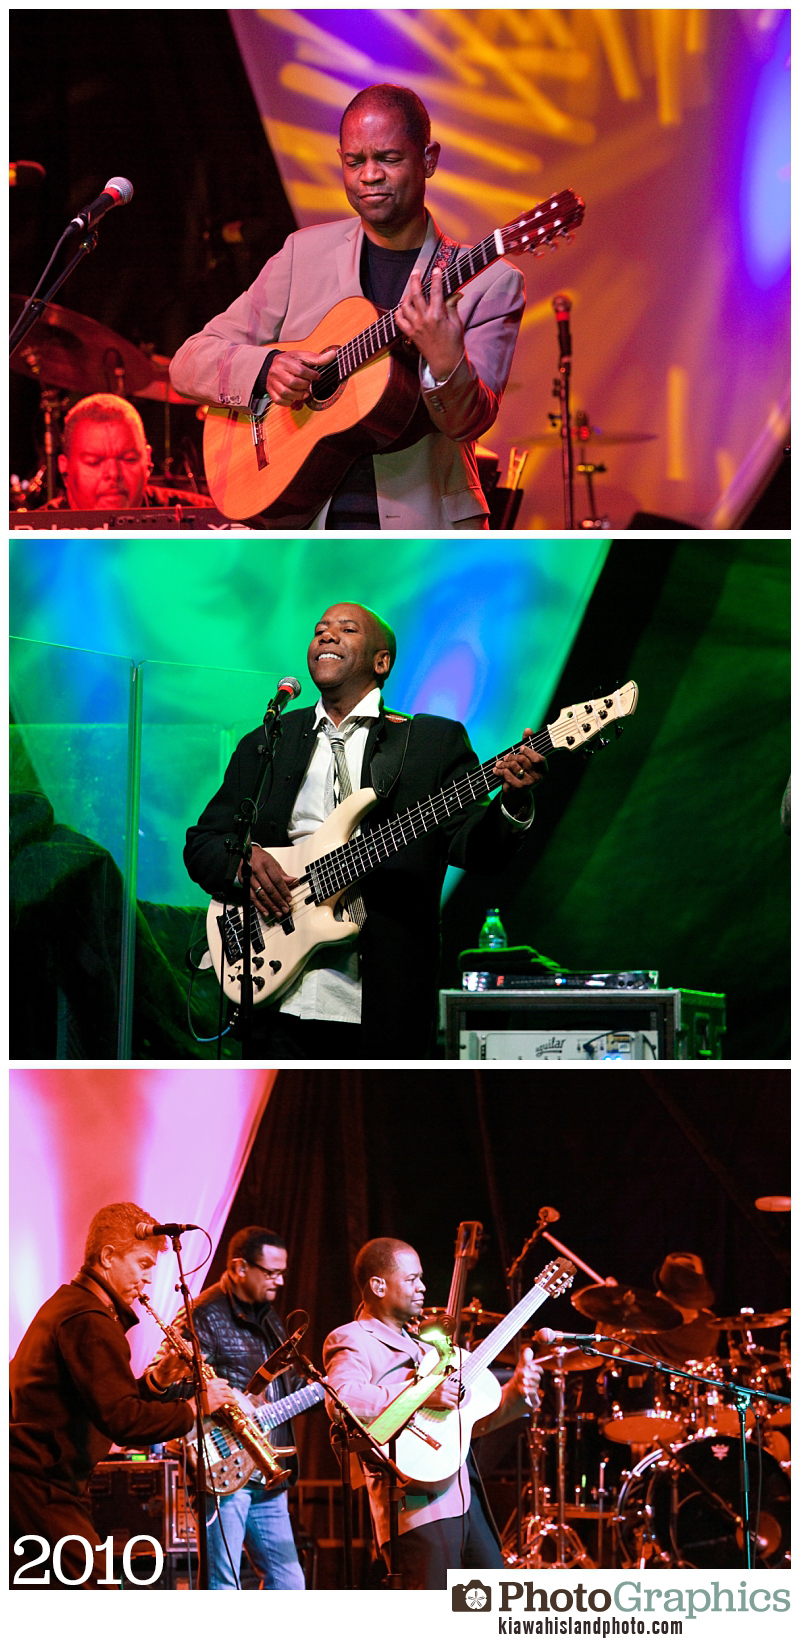 Performances from Weekend of Jazz on Kiawah Island, event photography